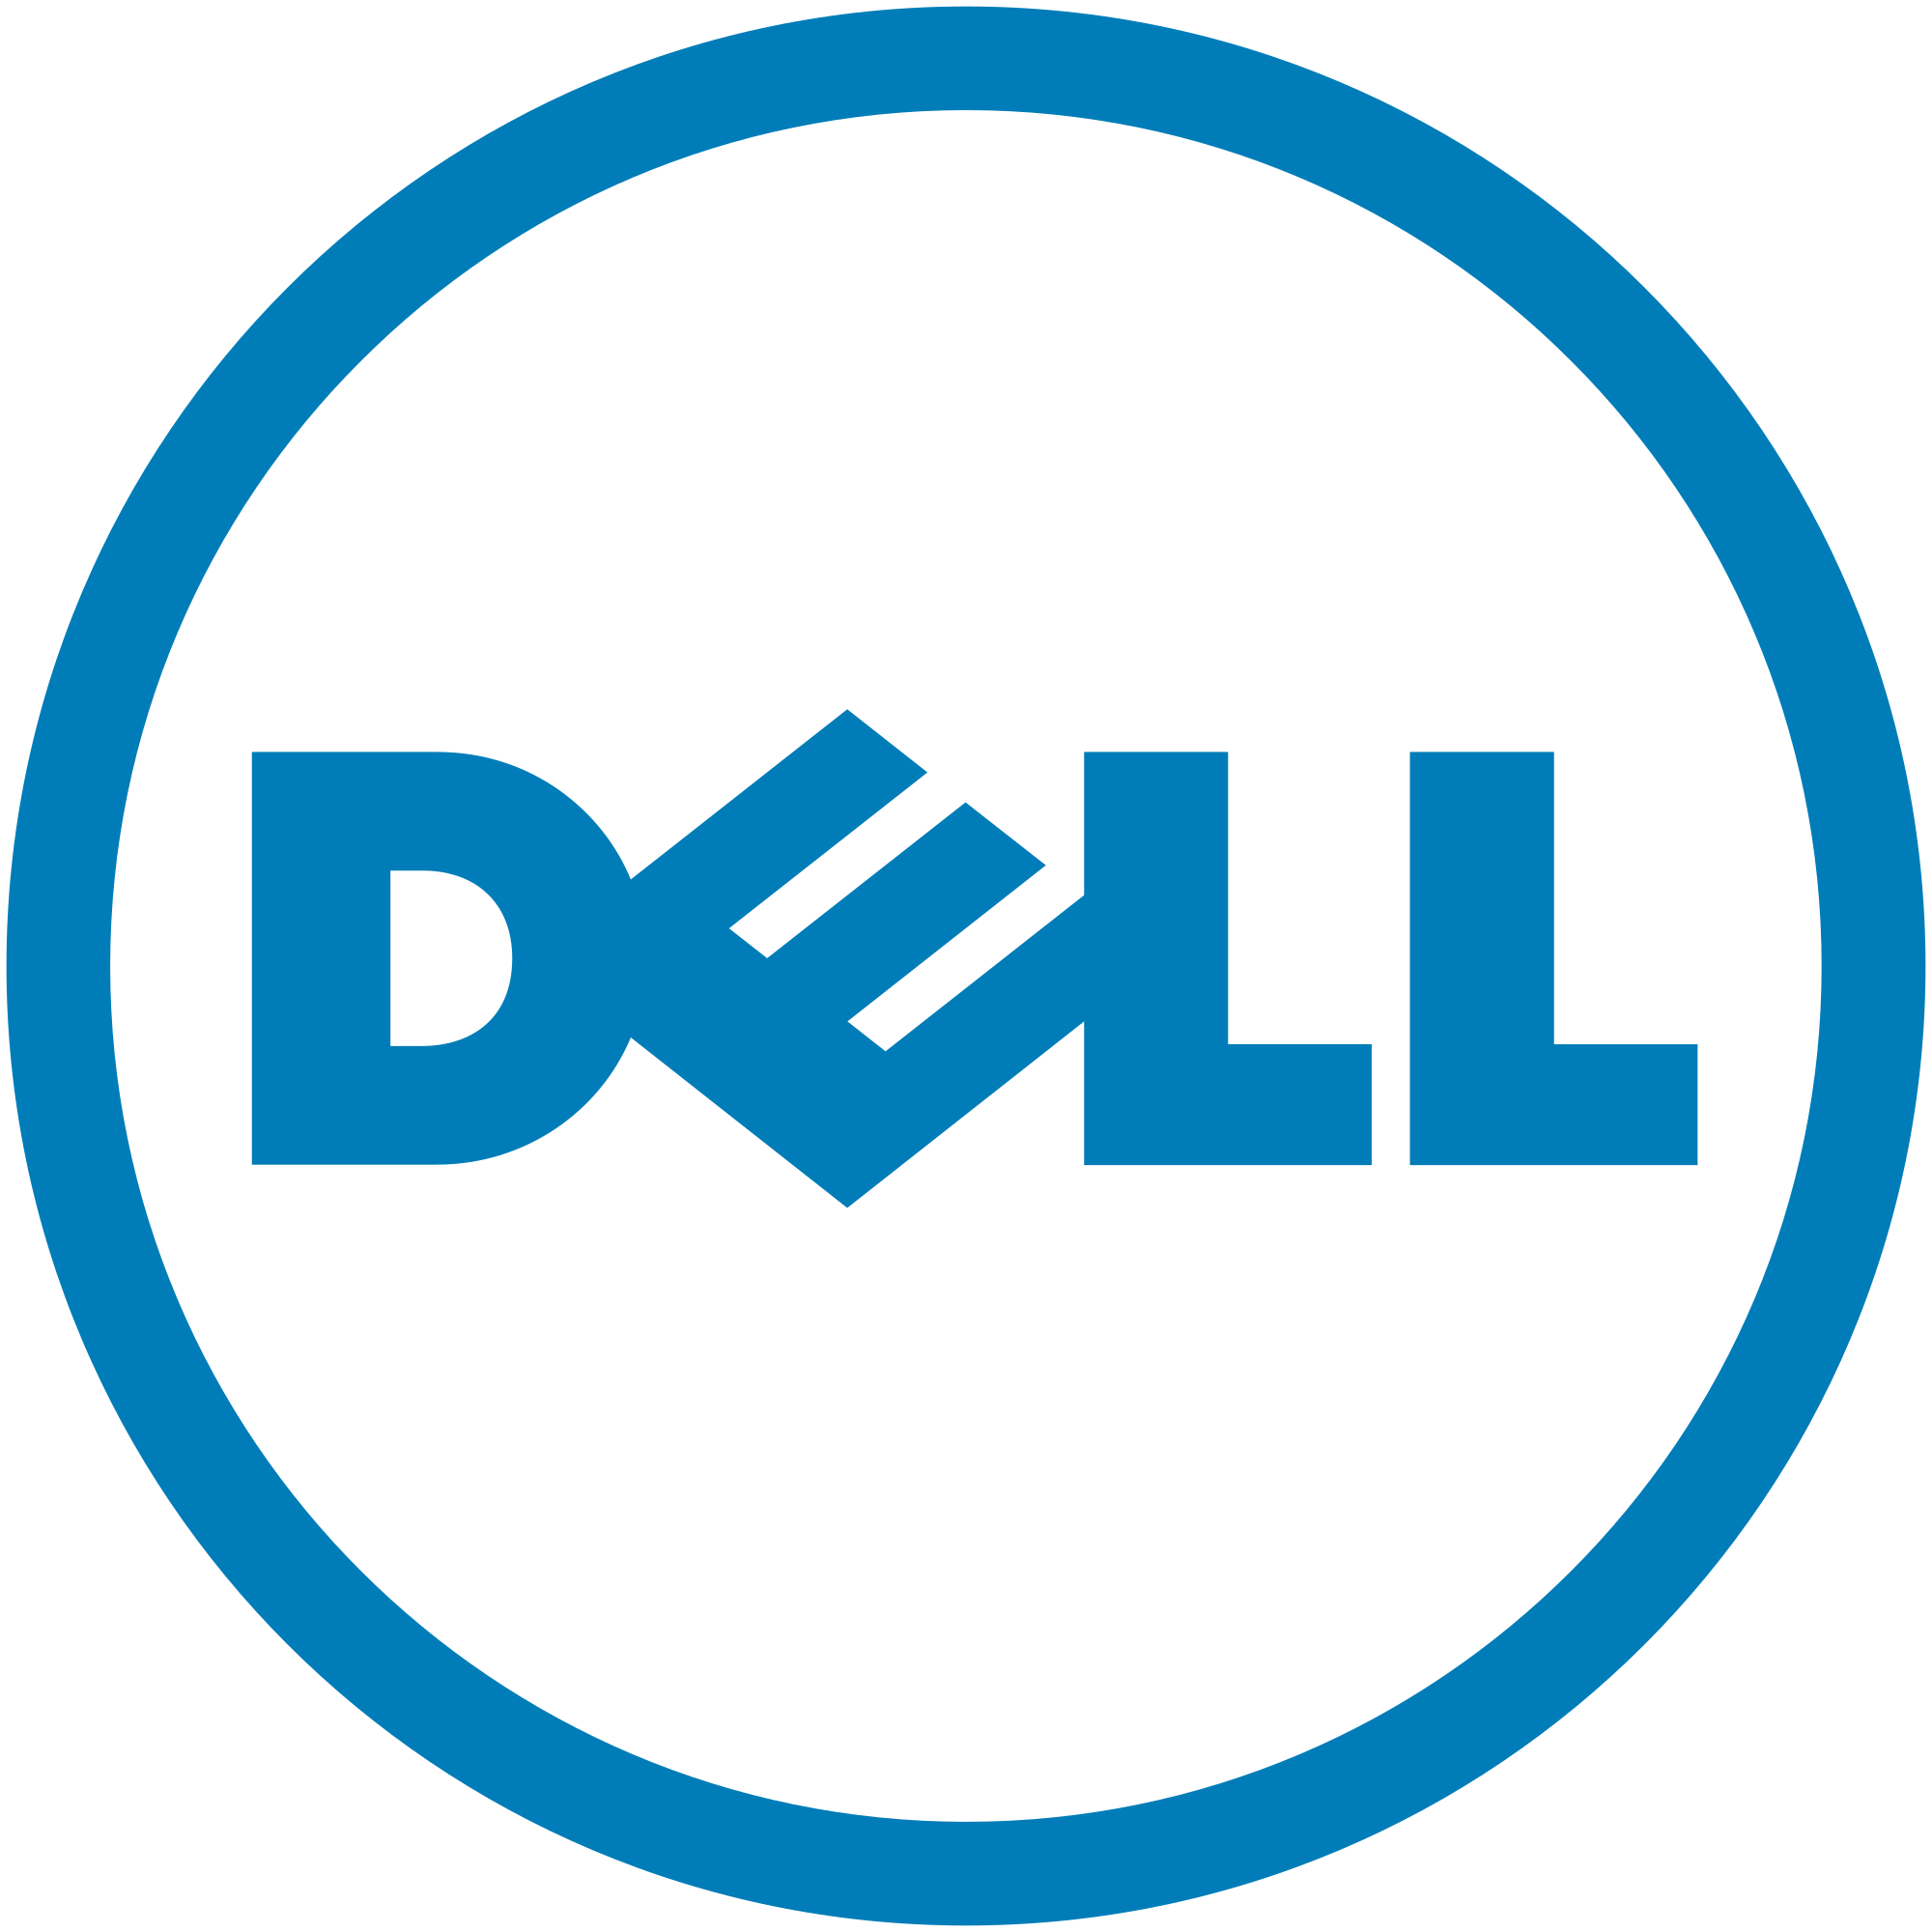 dell-logo-png-new-svg-image-2000 (1)